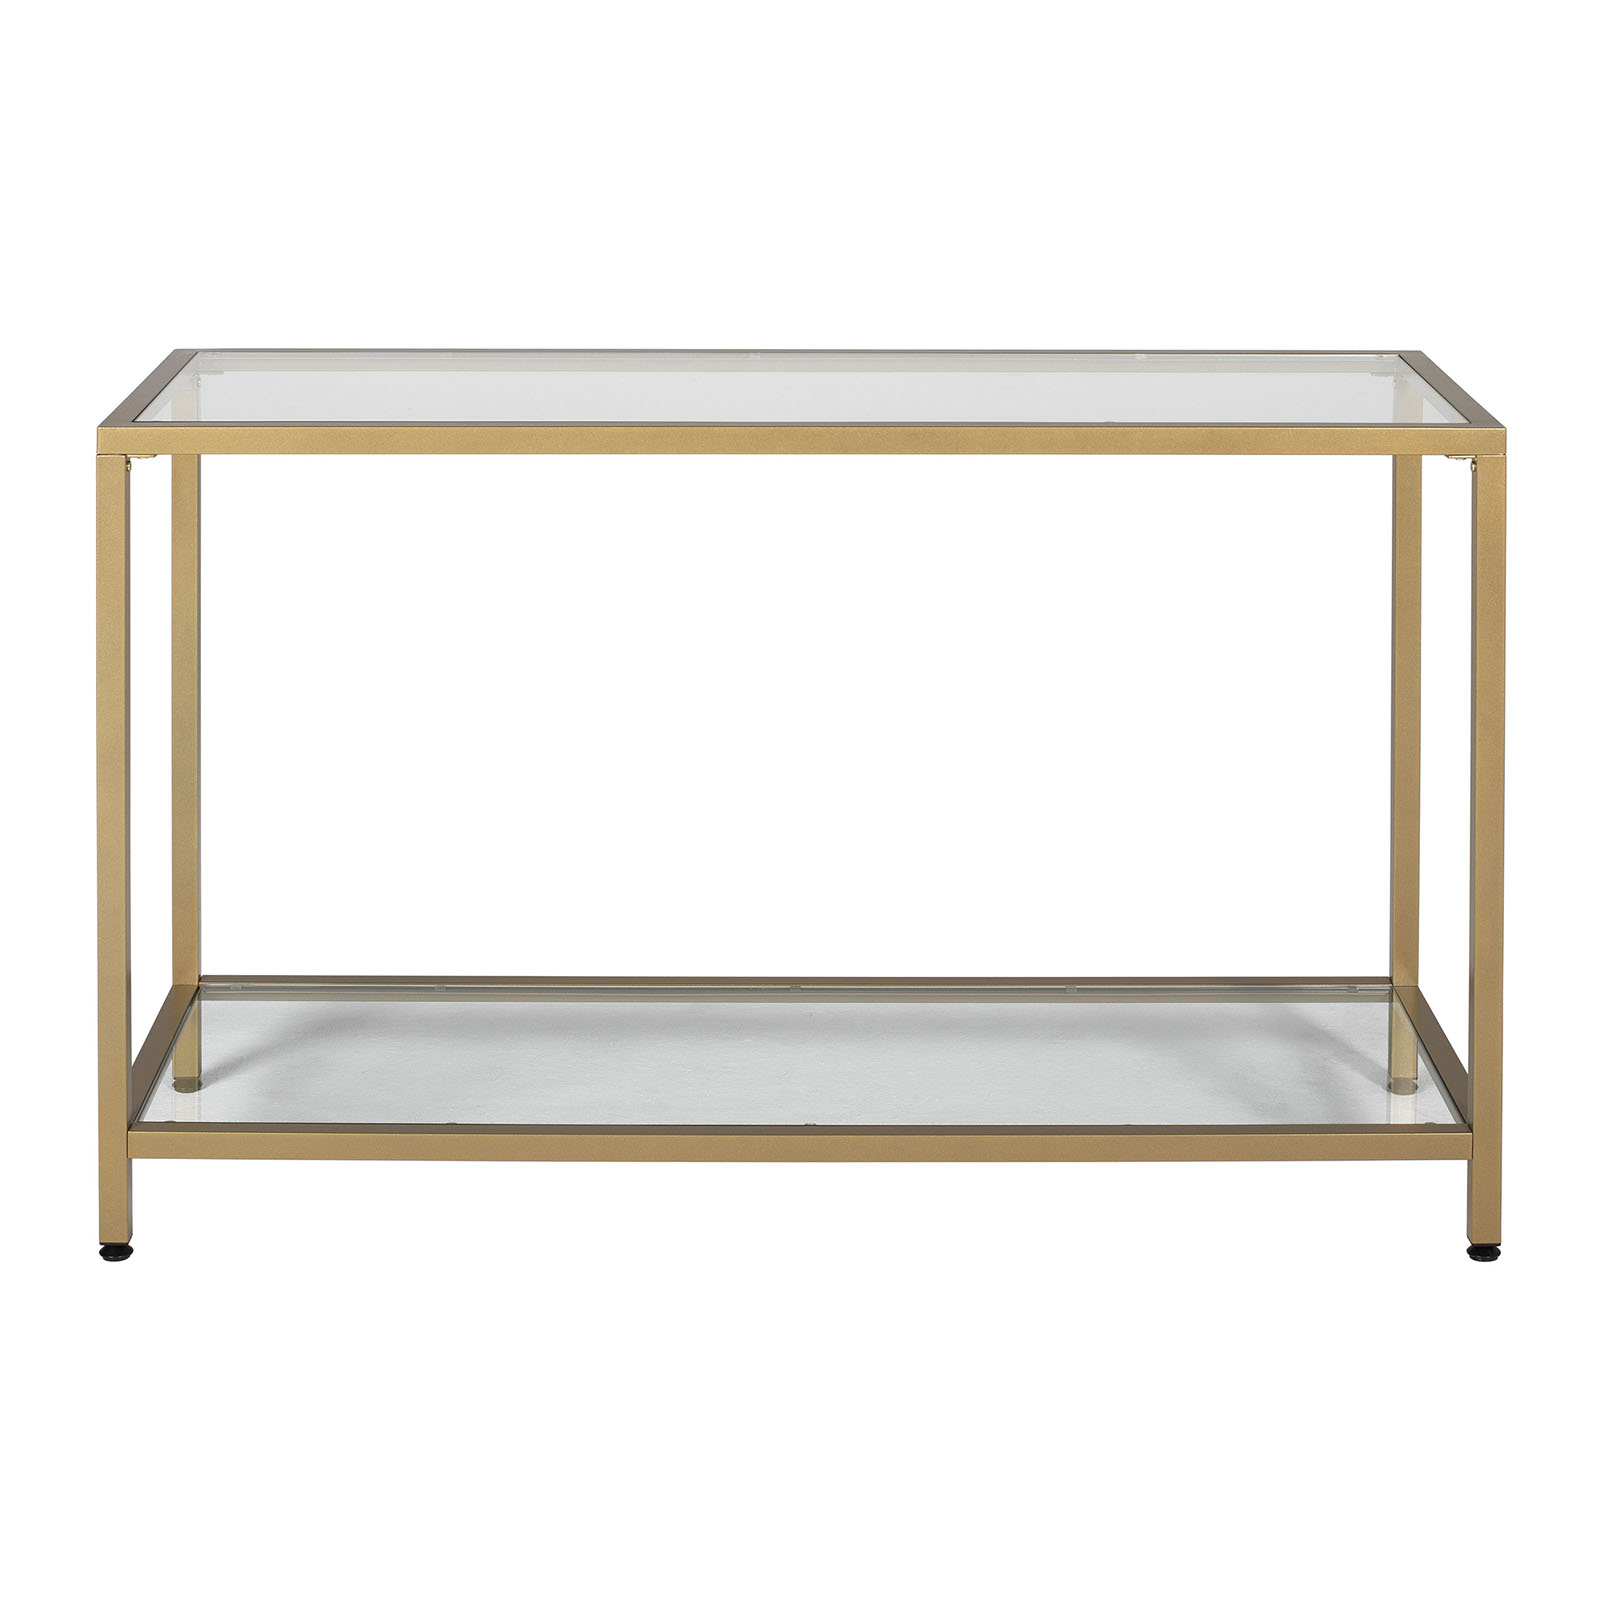 71036 Camber Console Table front